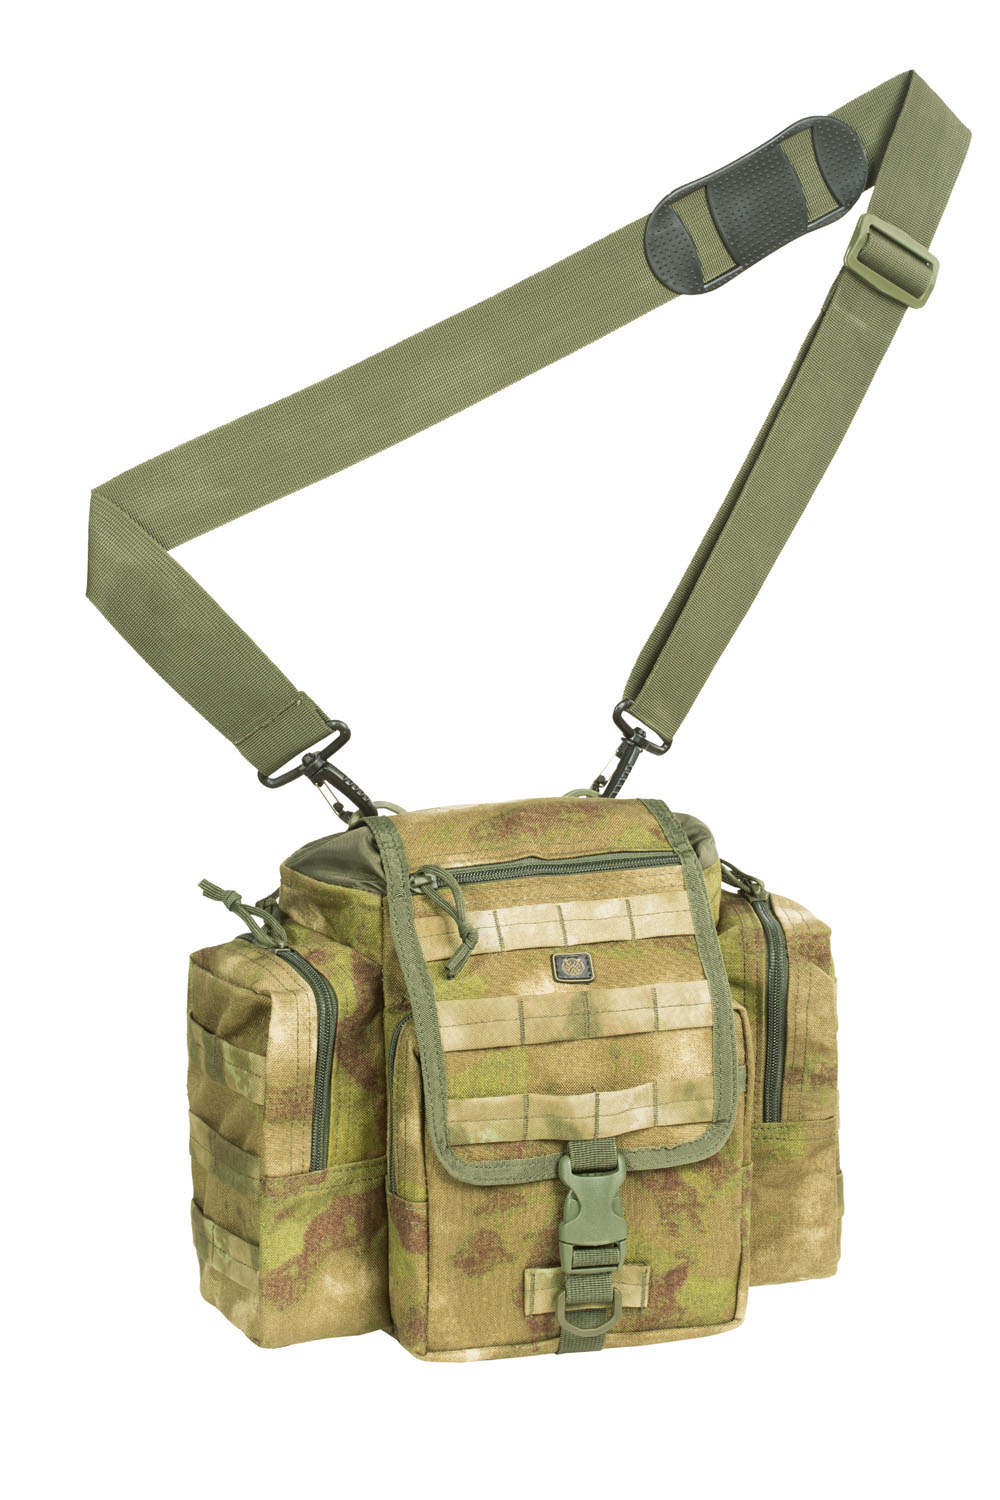 Field buttpack